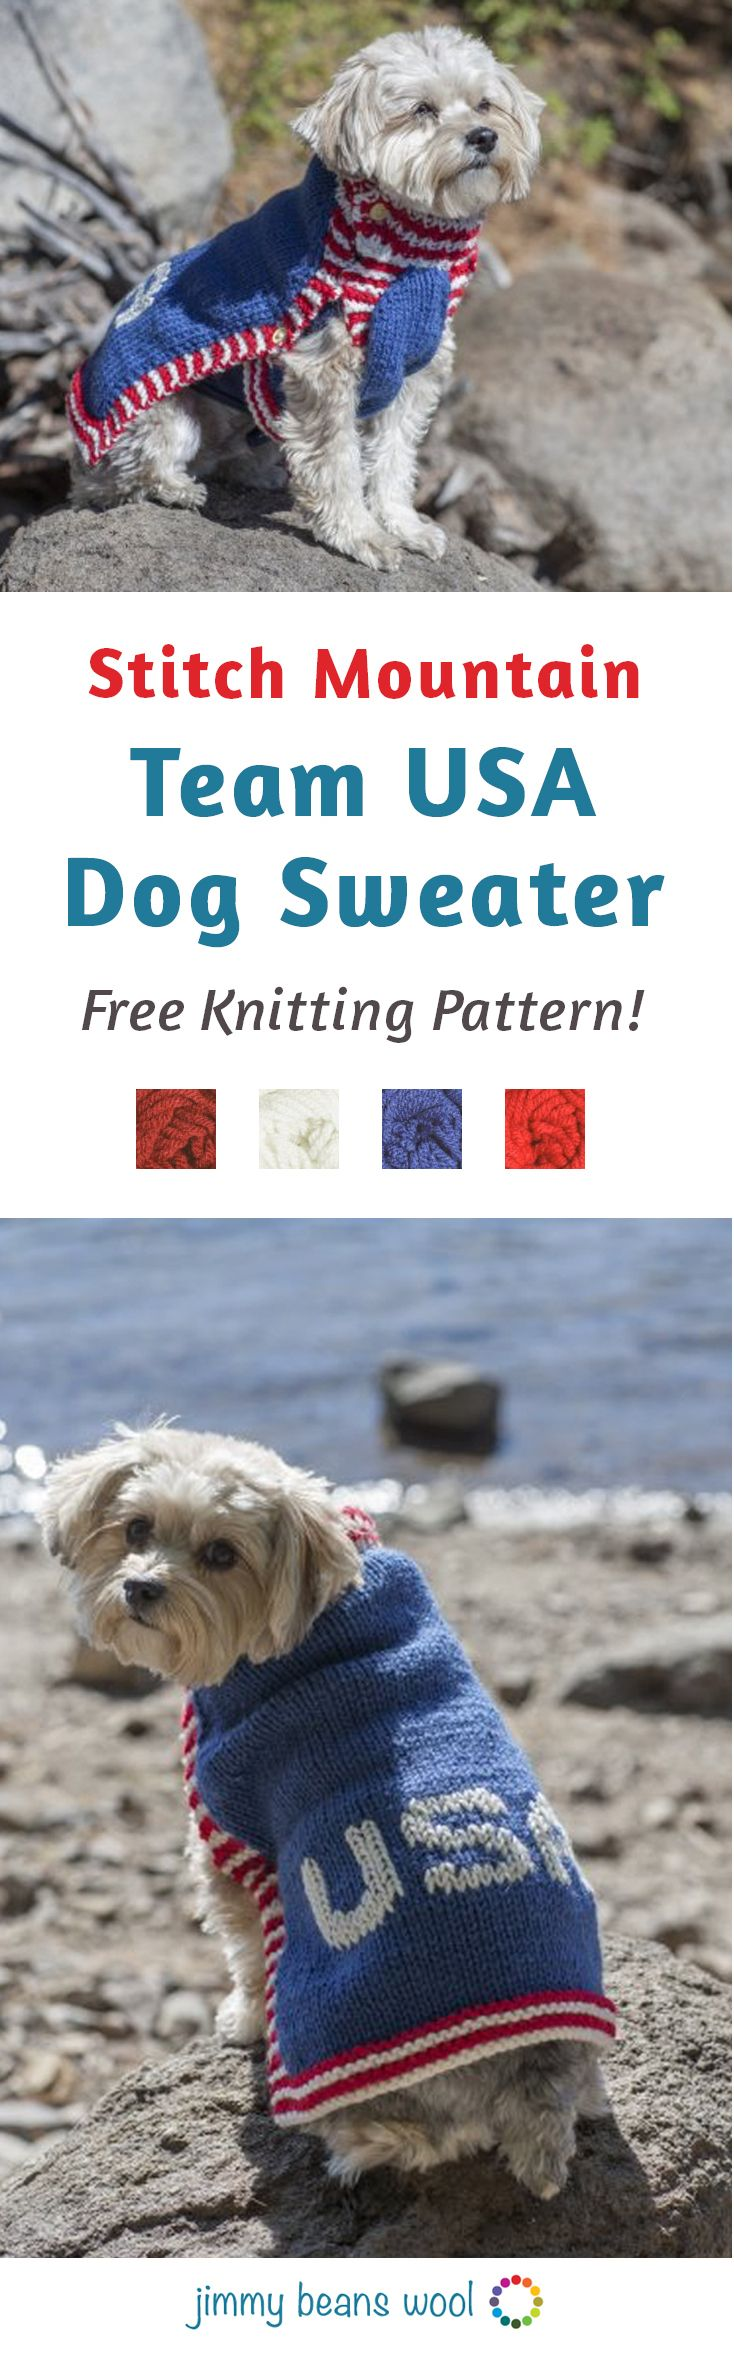 34 best jimmy beans wool images on pinterest knitting for stitch mountain team usa dog sweater free knitting pattern free knitting pattern knit your bankloansurffo Gallery